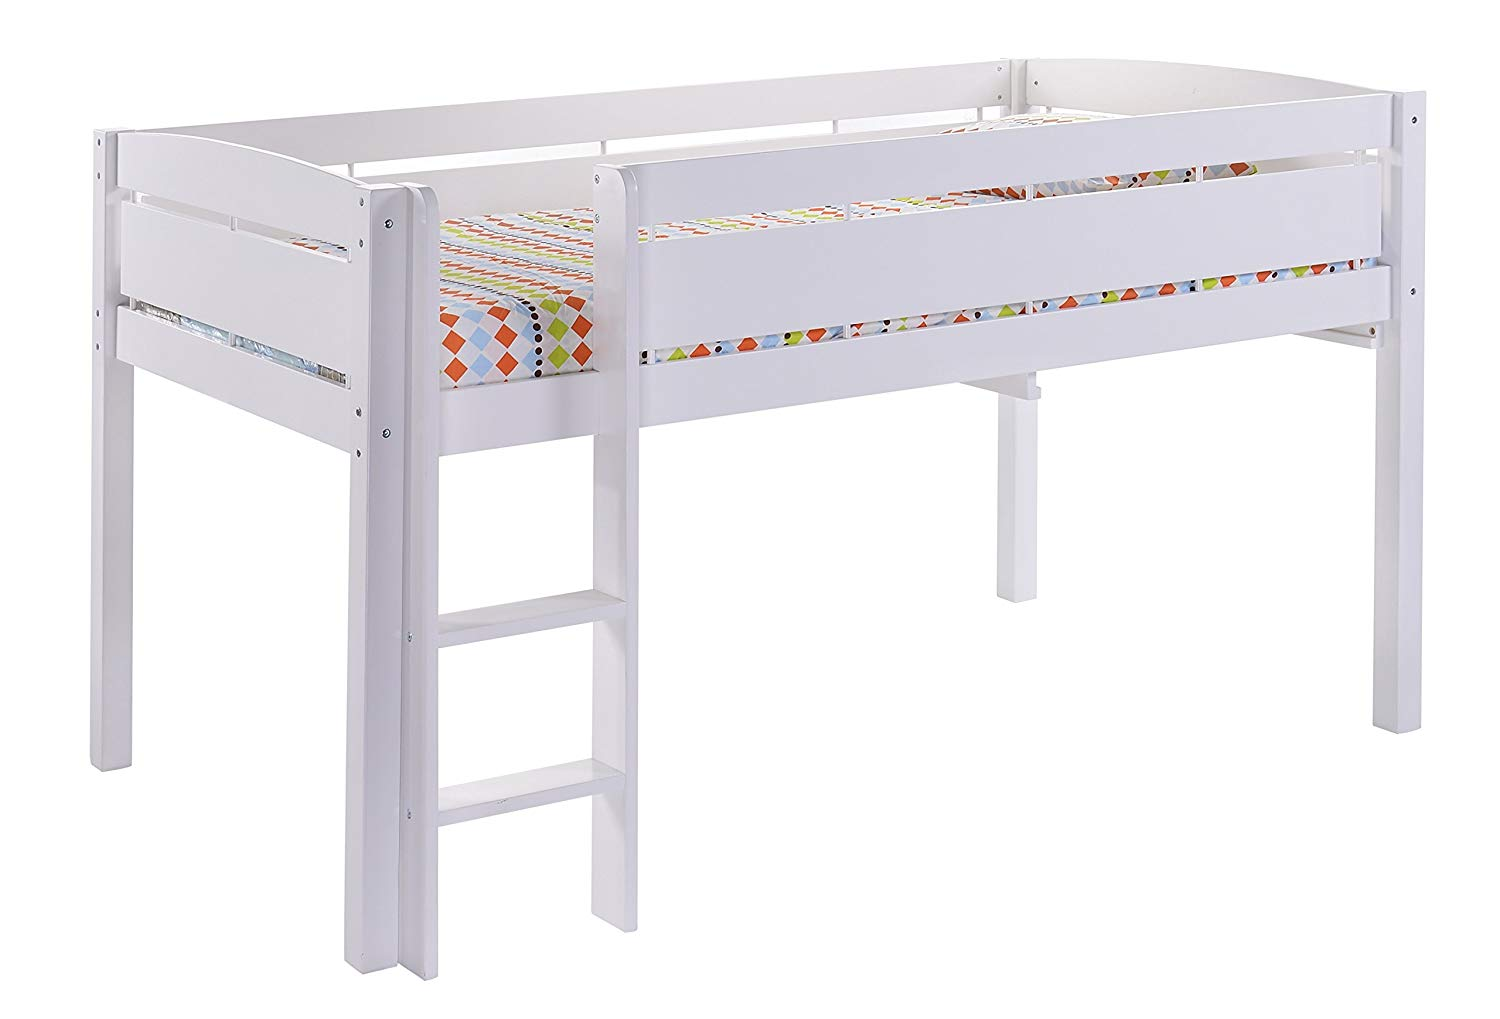 Junior beds amazon.com: canwood whistler junior loft bed, white, twin-sized mattress  (not included), bunk MBDXJWN